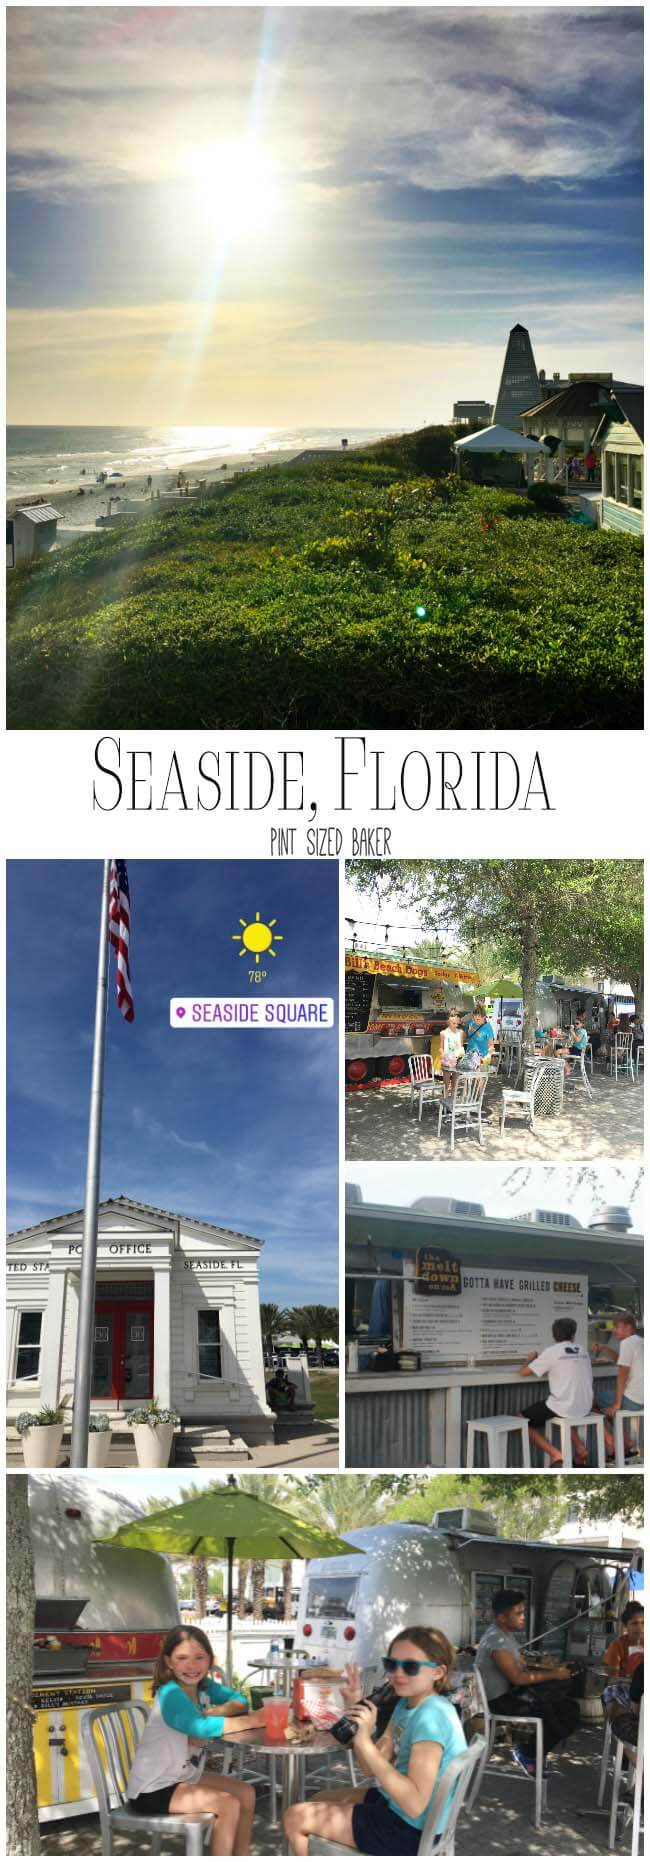 Seaside, Florida is a planned community that is great for biking, walking, shopping and offers beautiful beaches to swim at.